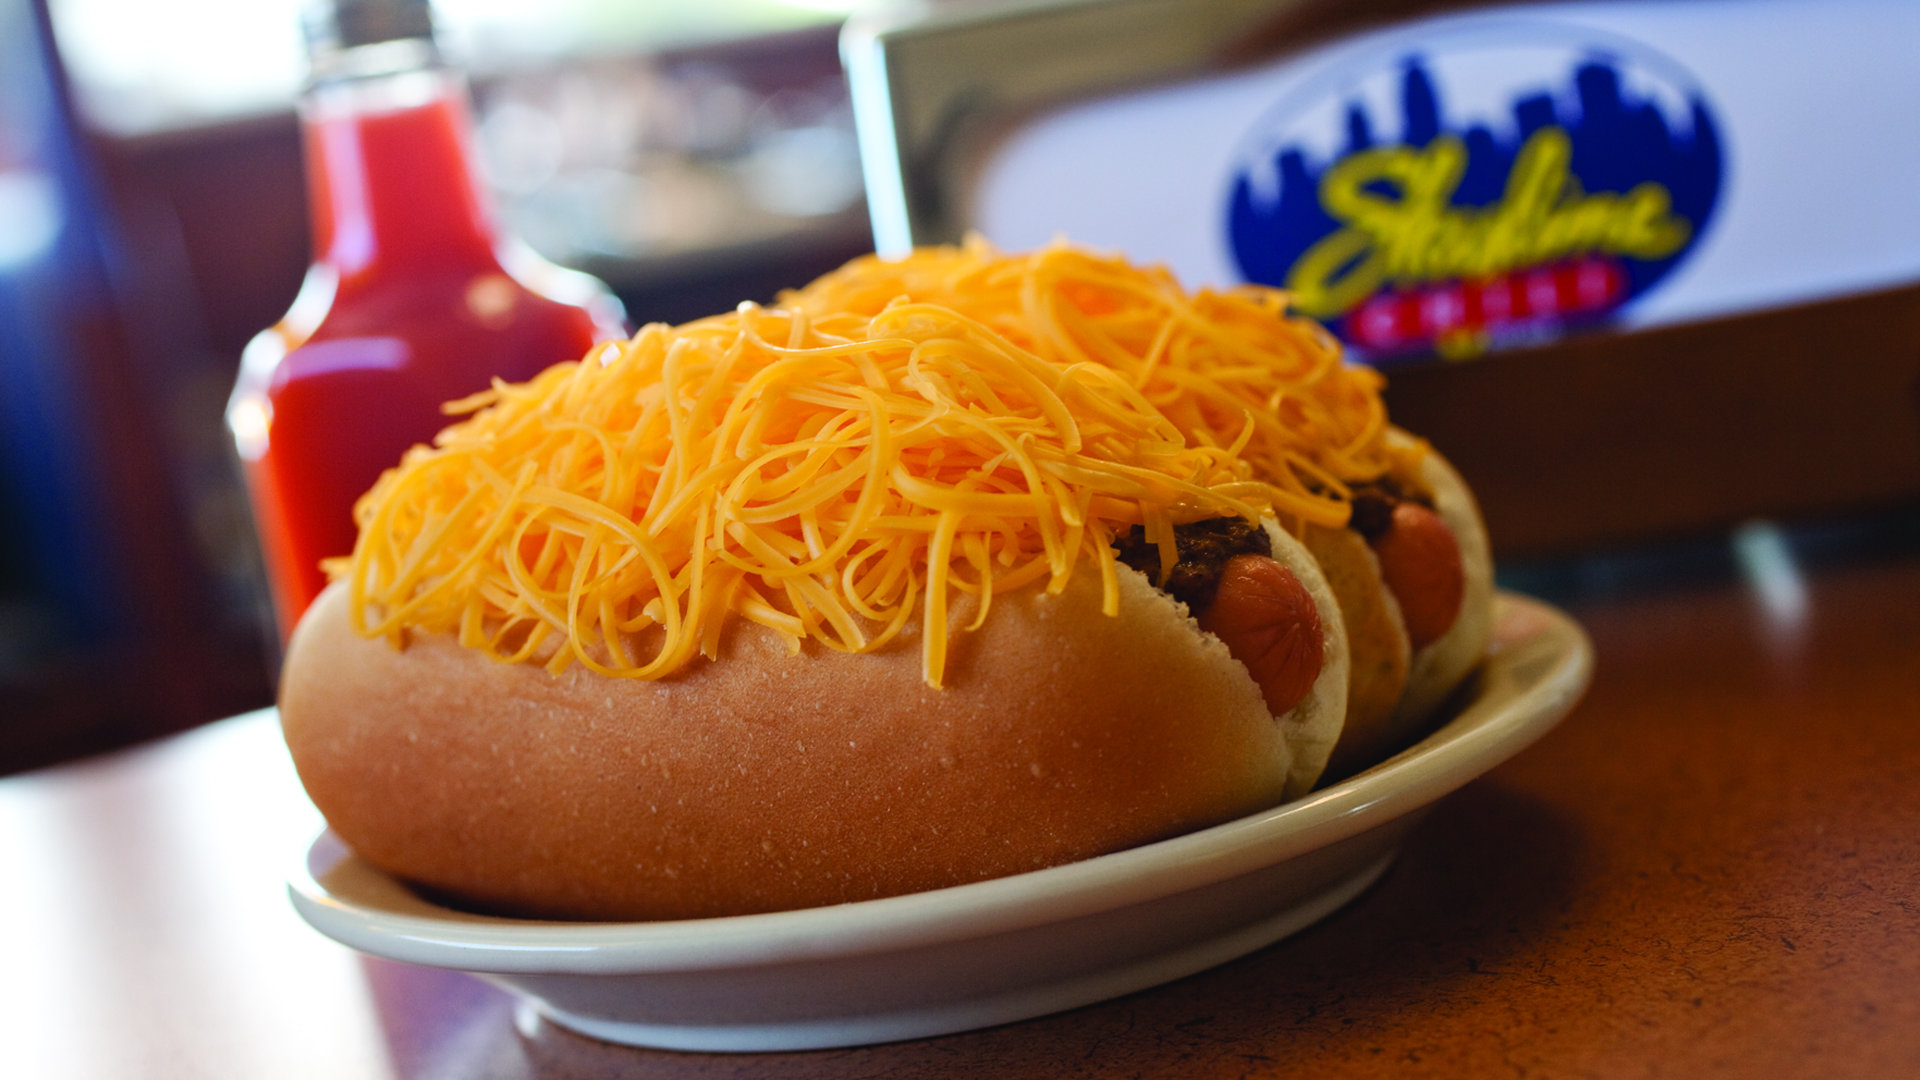 Skyline Chili, Cleves OH